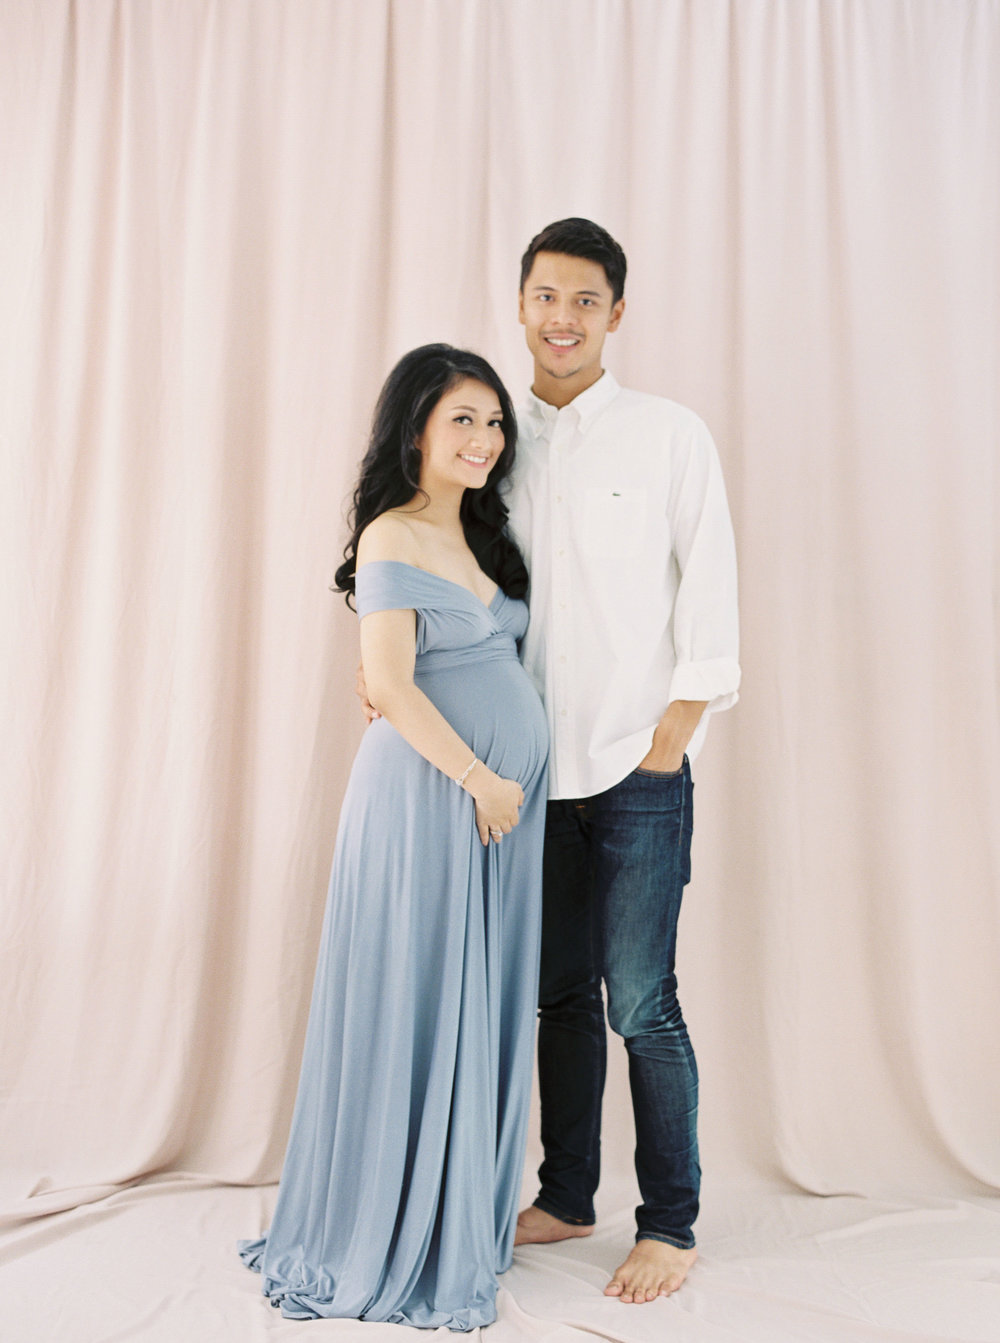 Romantic Elegant Couple Maternity Portrait - Studio June - Film Photography & Styling - Jakarta-44.jpg